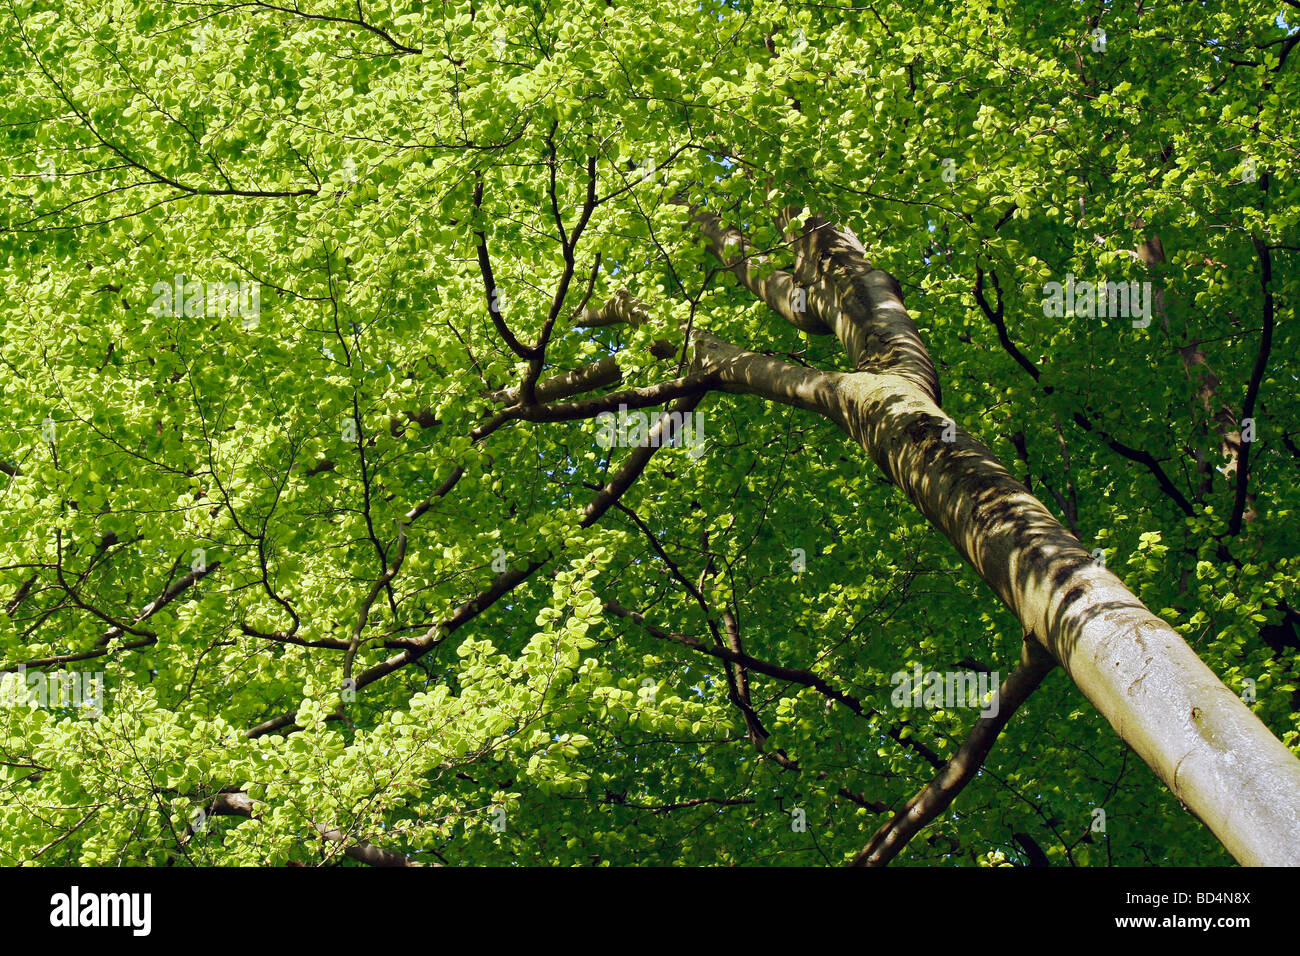 Young beech tree, low angle view. - Stock Image